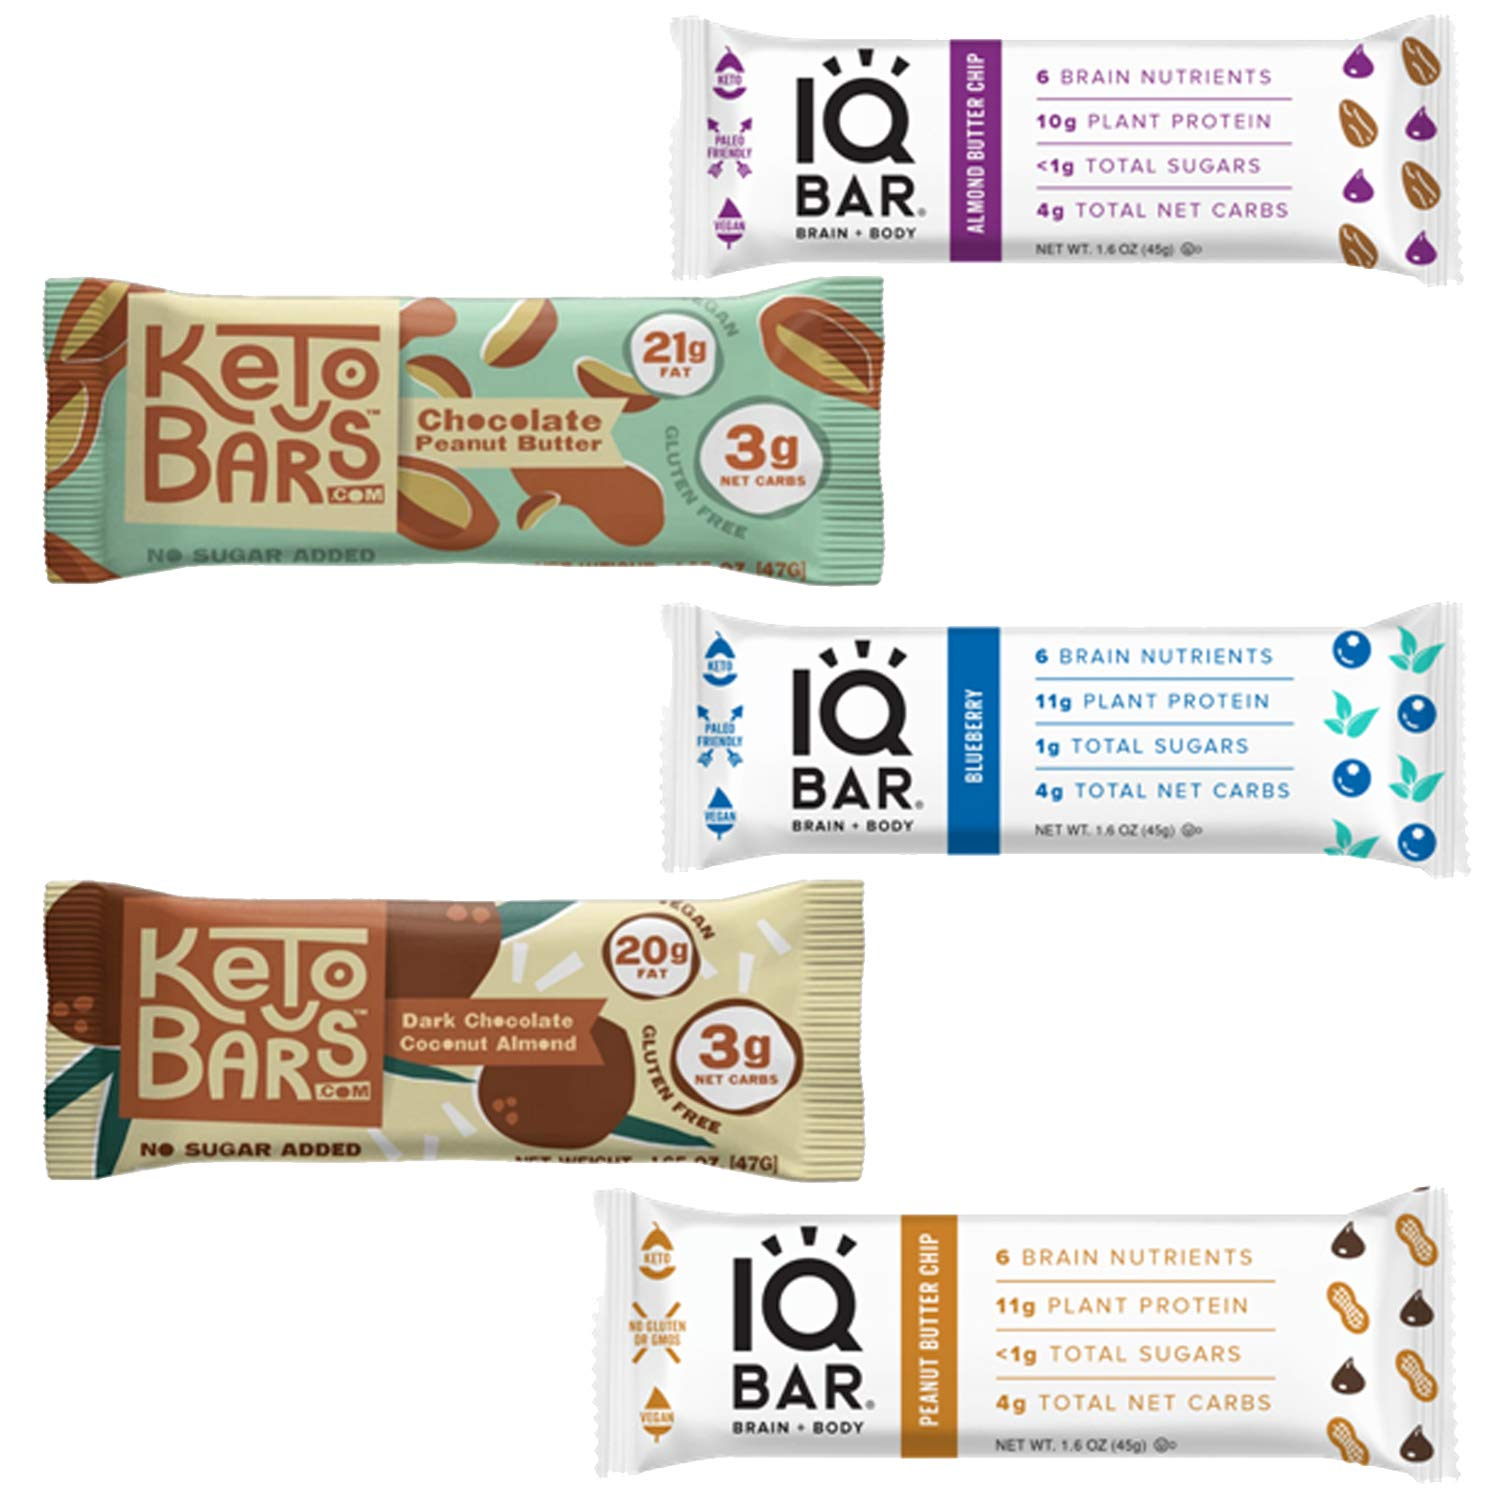 KETO Snack Bars Variety Pack: Assortment Of 5 Ultra Low Carb (4G Or Less) 1G of Natural Sugar, High Fat, Ketogenic Friendly, Gluten-Free Bars. by BUNNY · JAMES ·